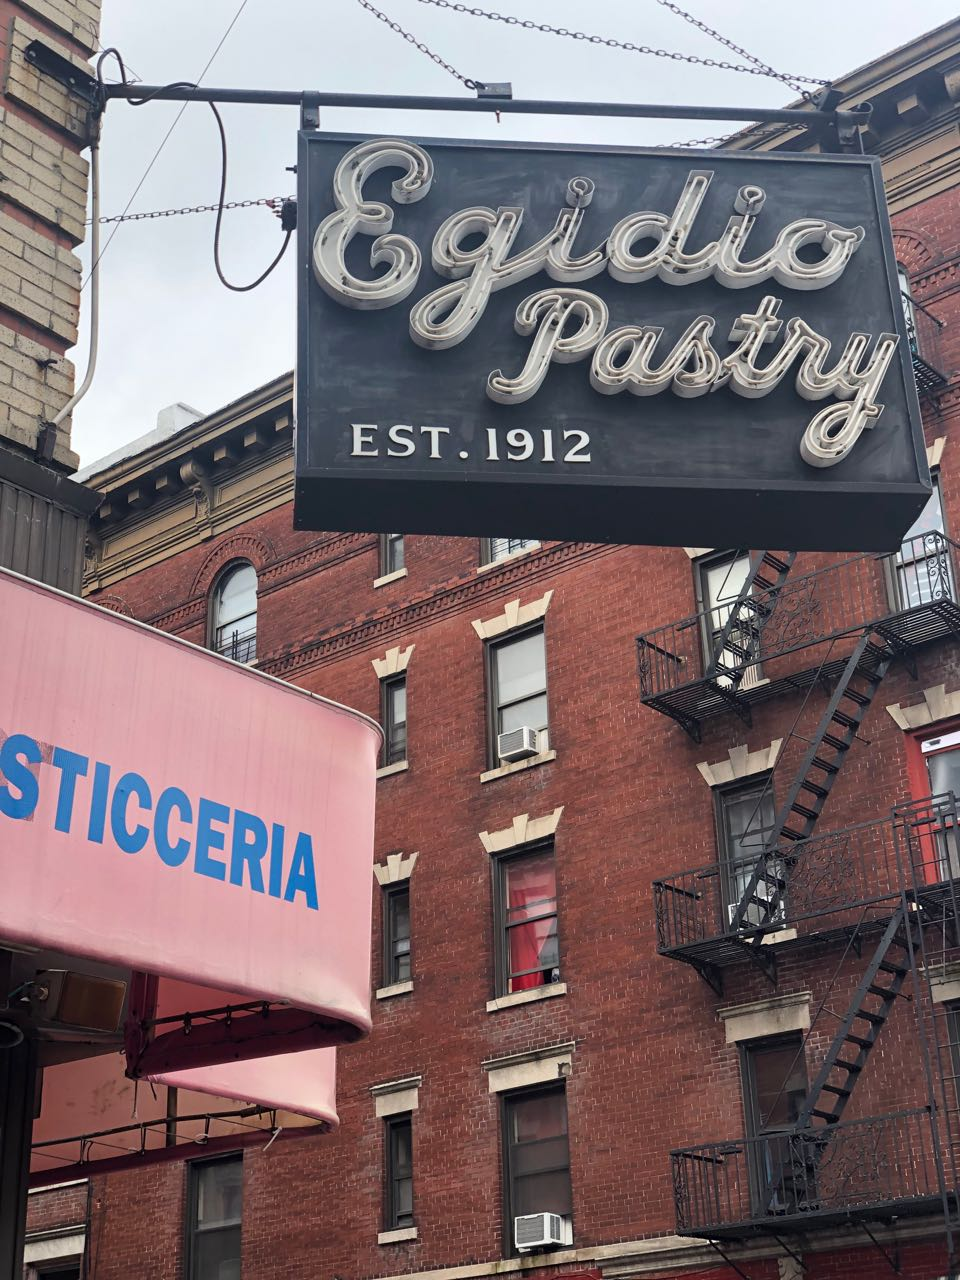 Our Guide On How To Experience The Best Italian Food In NYC